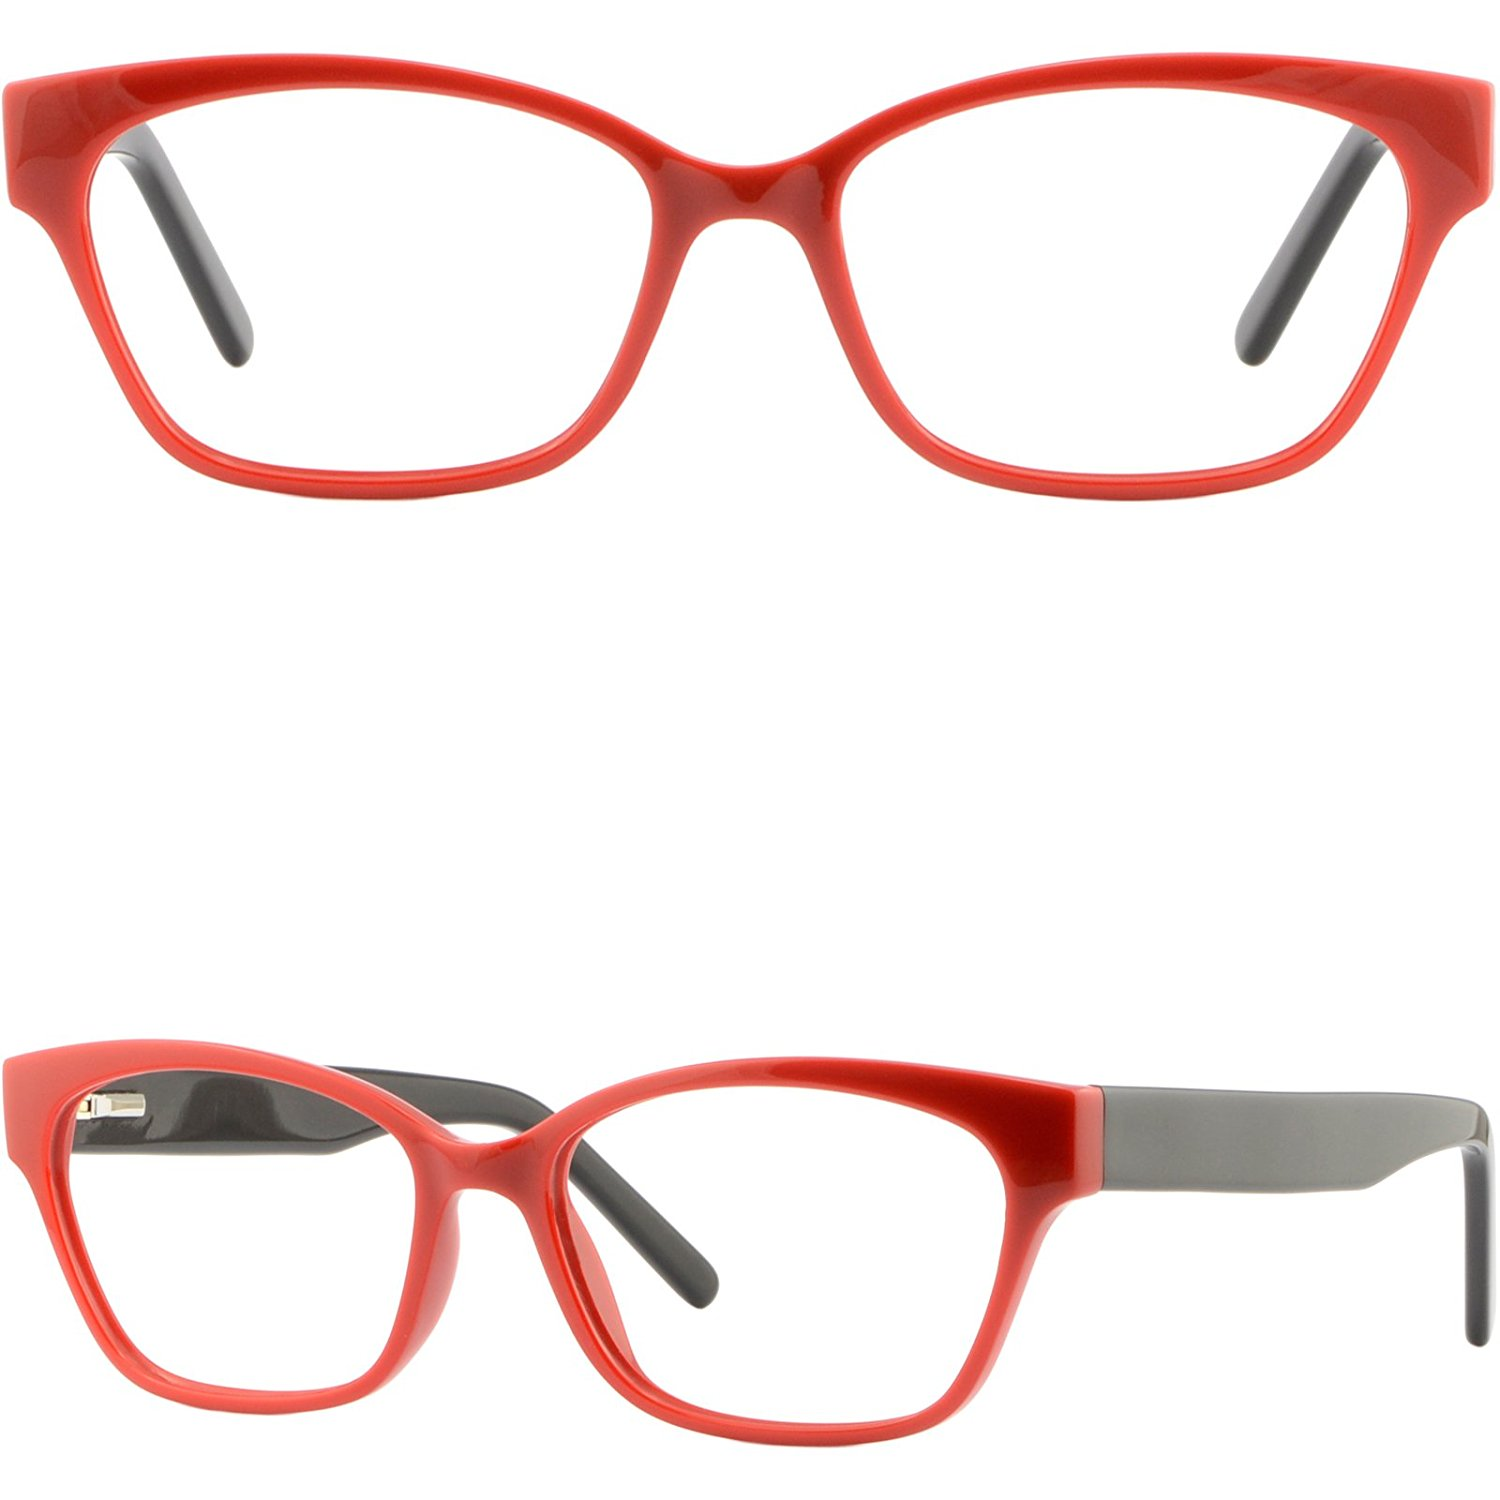 ccb9b843c6b Square Womens Acetate Frame Plastic Eyeglasses Glasses Spring Hinges Red  Glasses